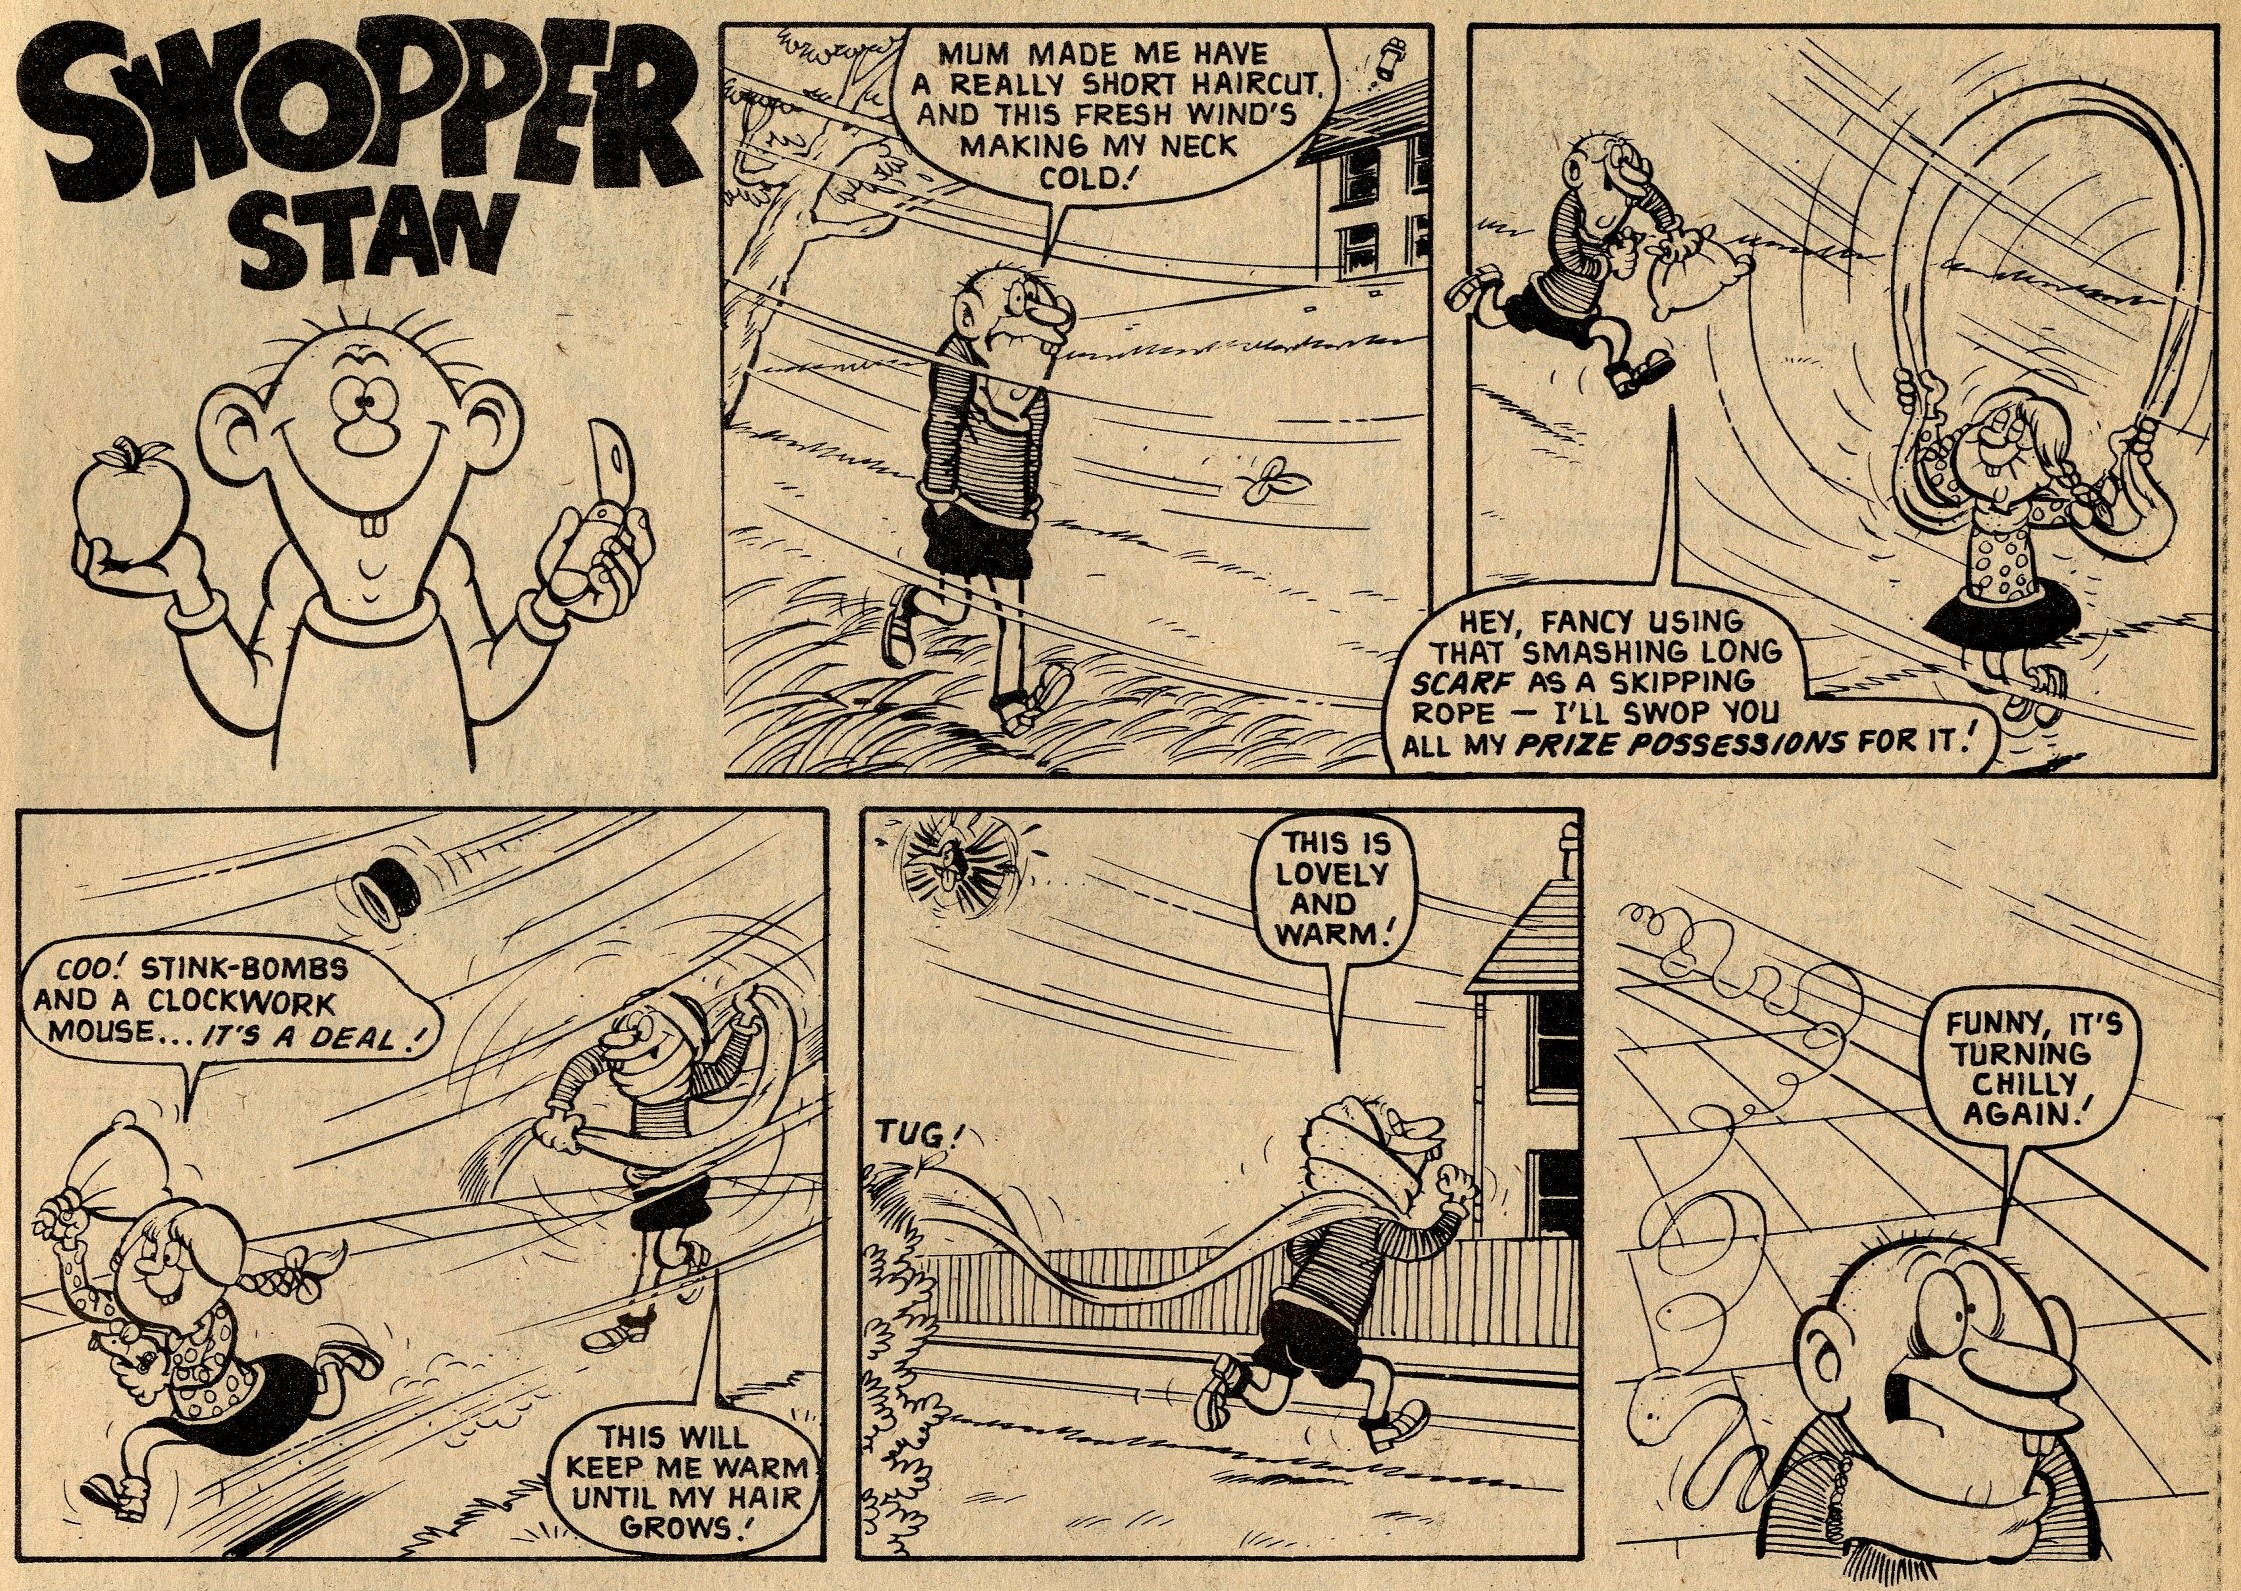 Swopper Stan: Mike Lacey (artist)